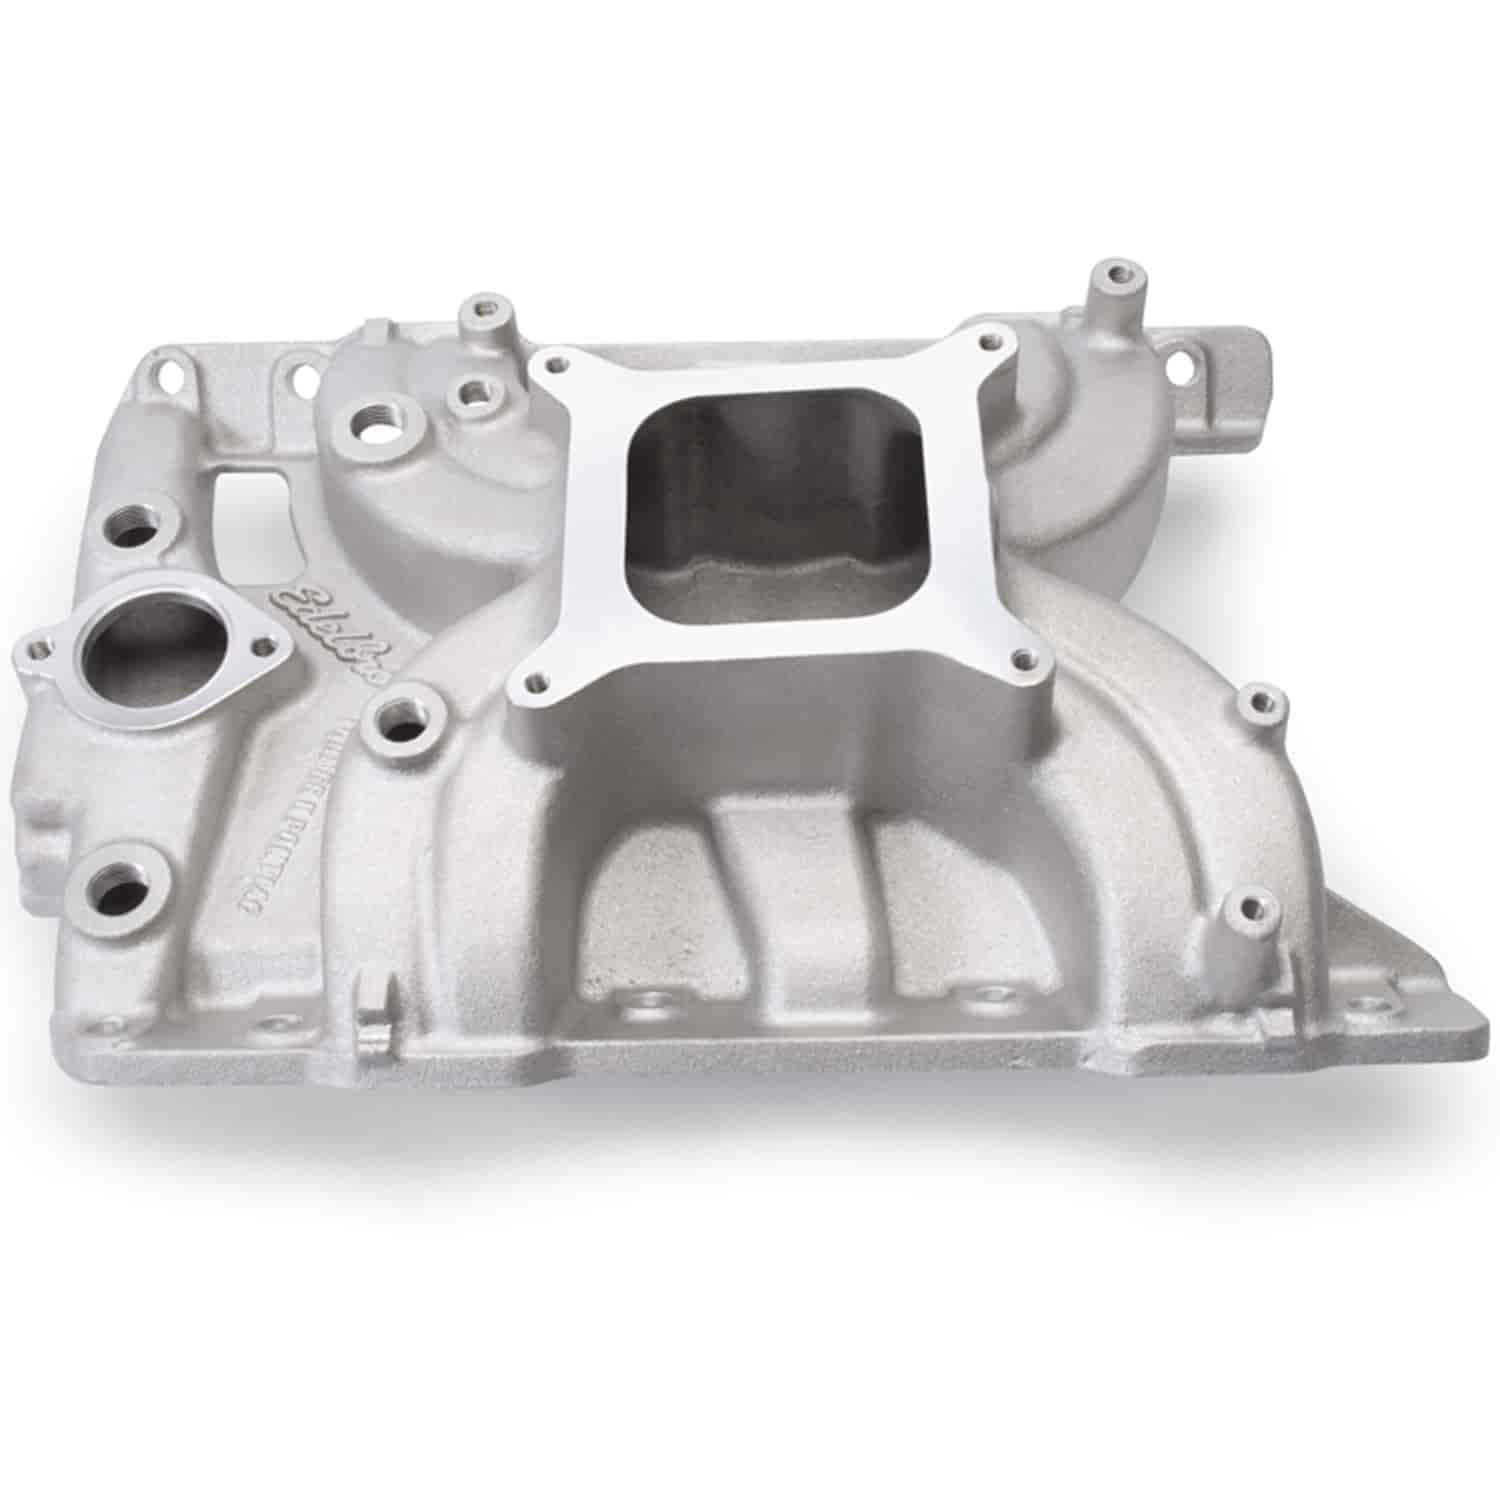 Edelbrock 5056 - Edelbrock Torker-II Manifolds and Kits for Pontiac